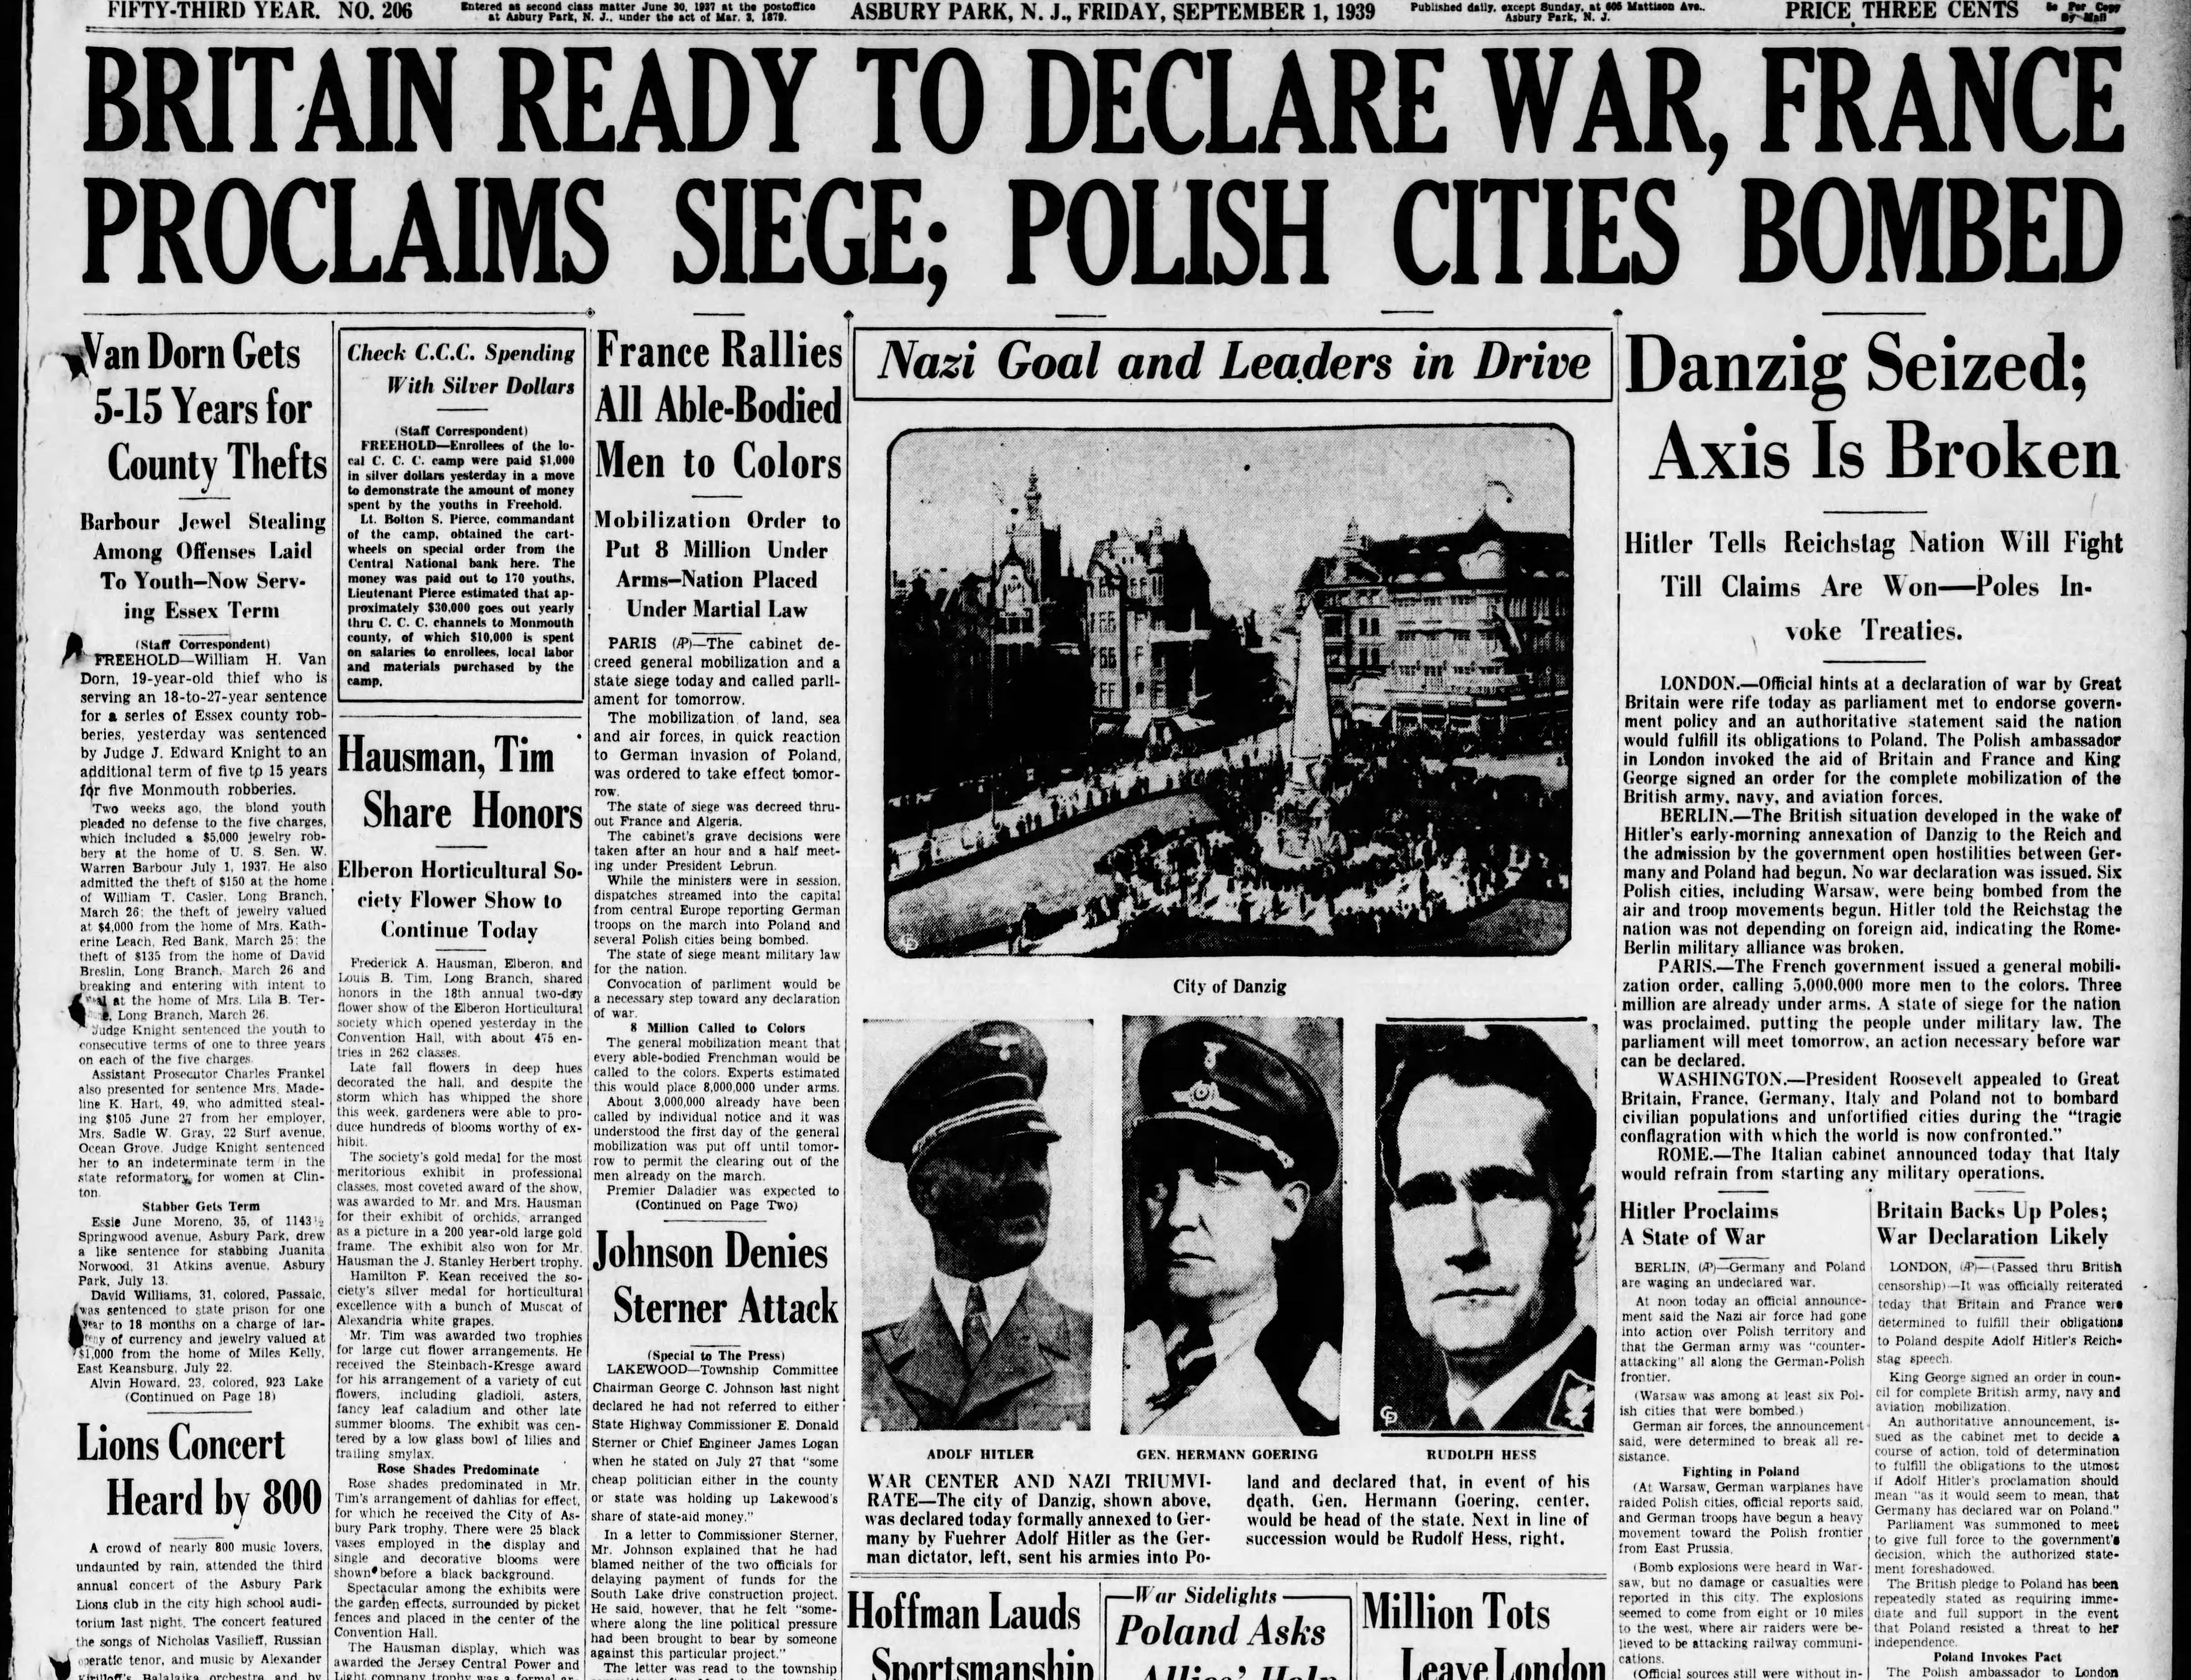 World War II begins in Europe after Nazi Germany's Adolf Hitler orders the invasion of Poland on Friday, Sept. 1, 1939. As the international order crumbles once again, the United States plots an uneasy neutrality as most Americans at the time oppose intervention in another European war.